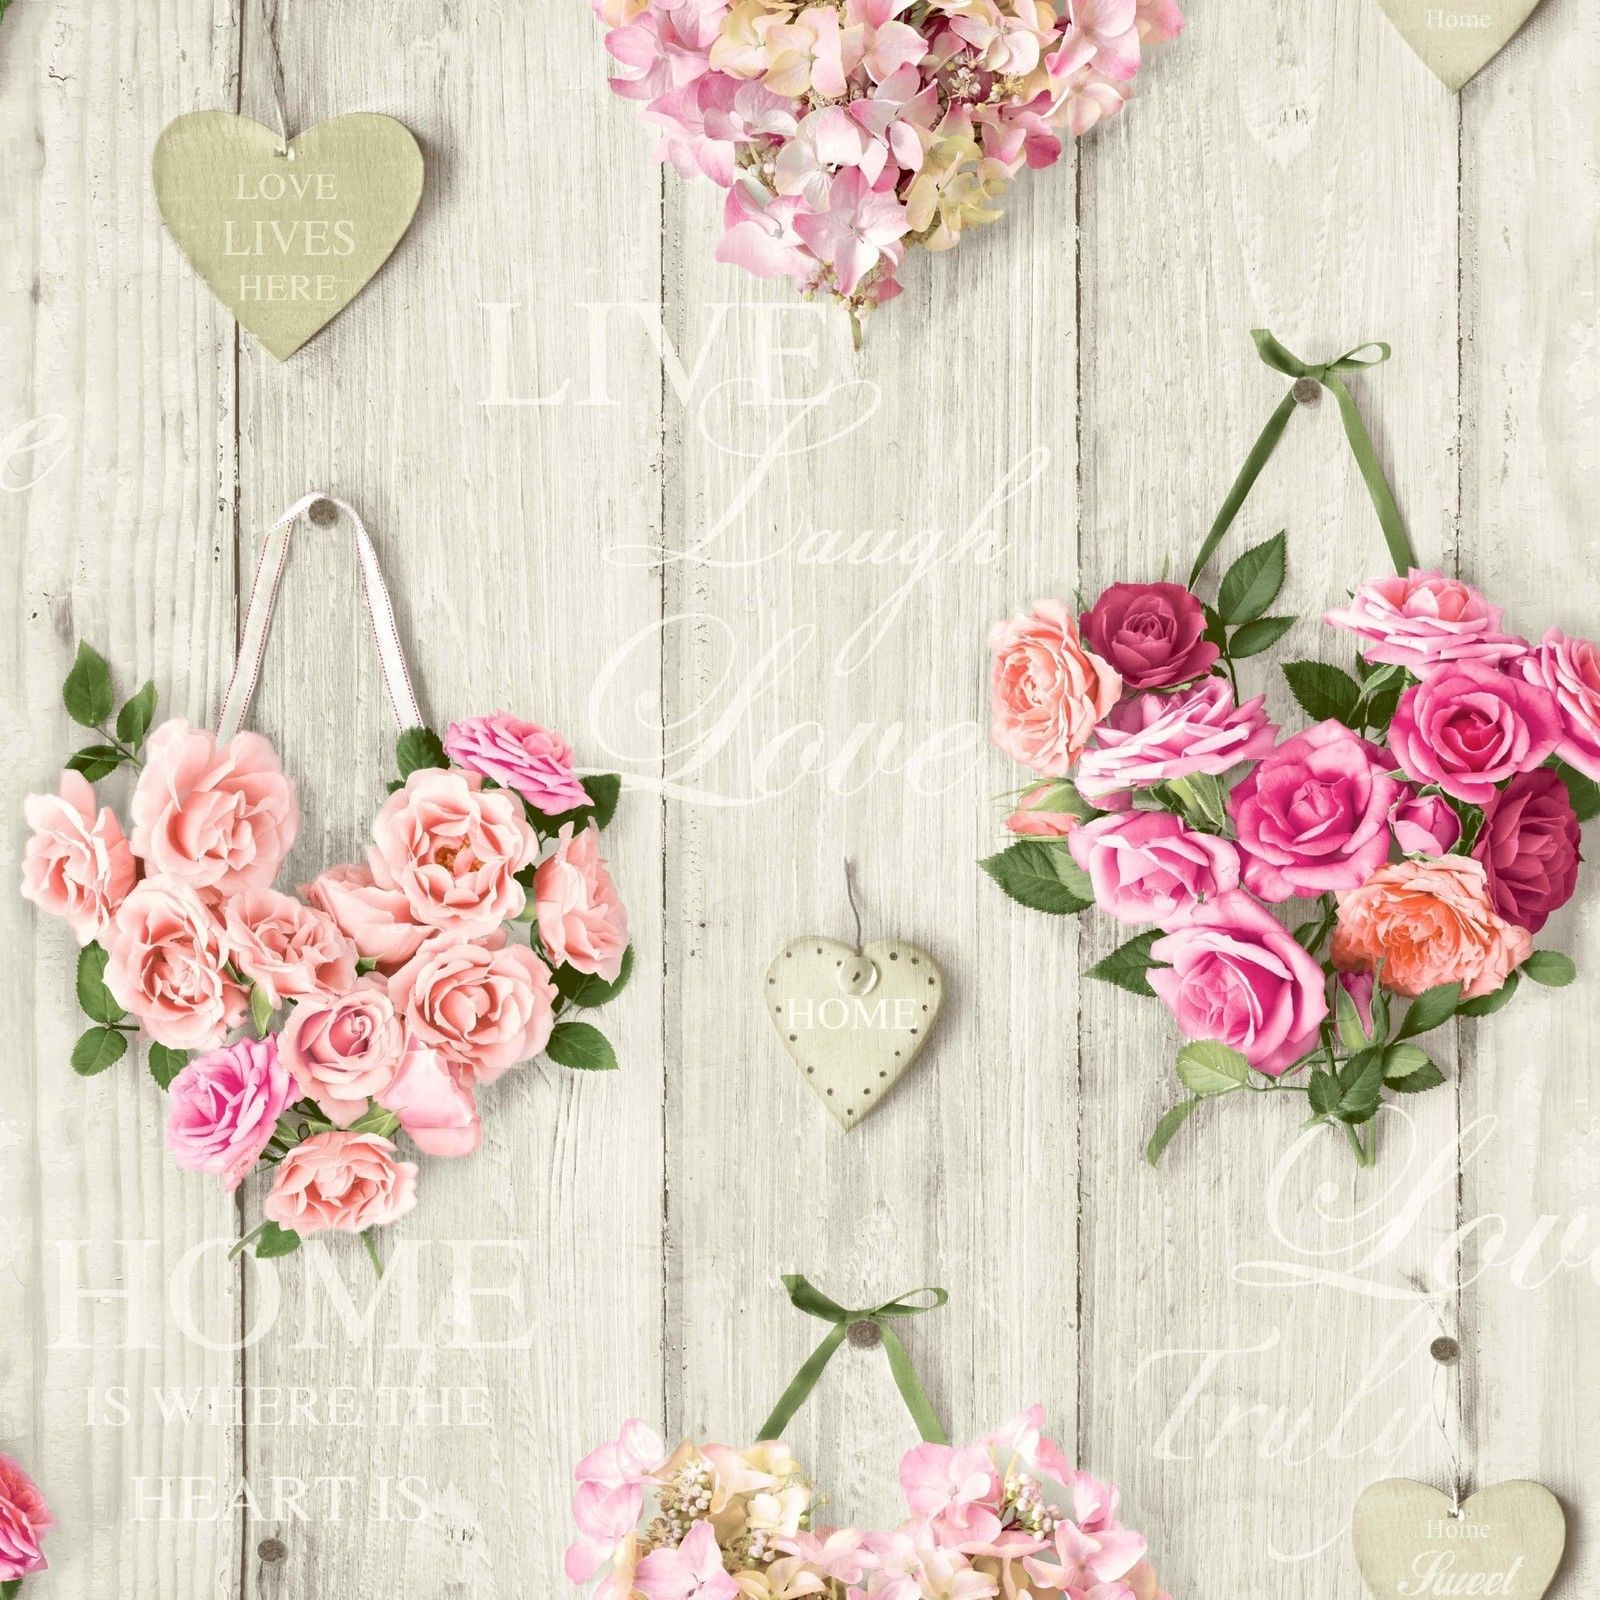 Pink Roses Wallpaper Flower Floral Bouquet Hearts Wood Panel